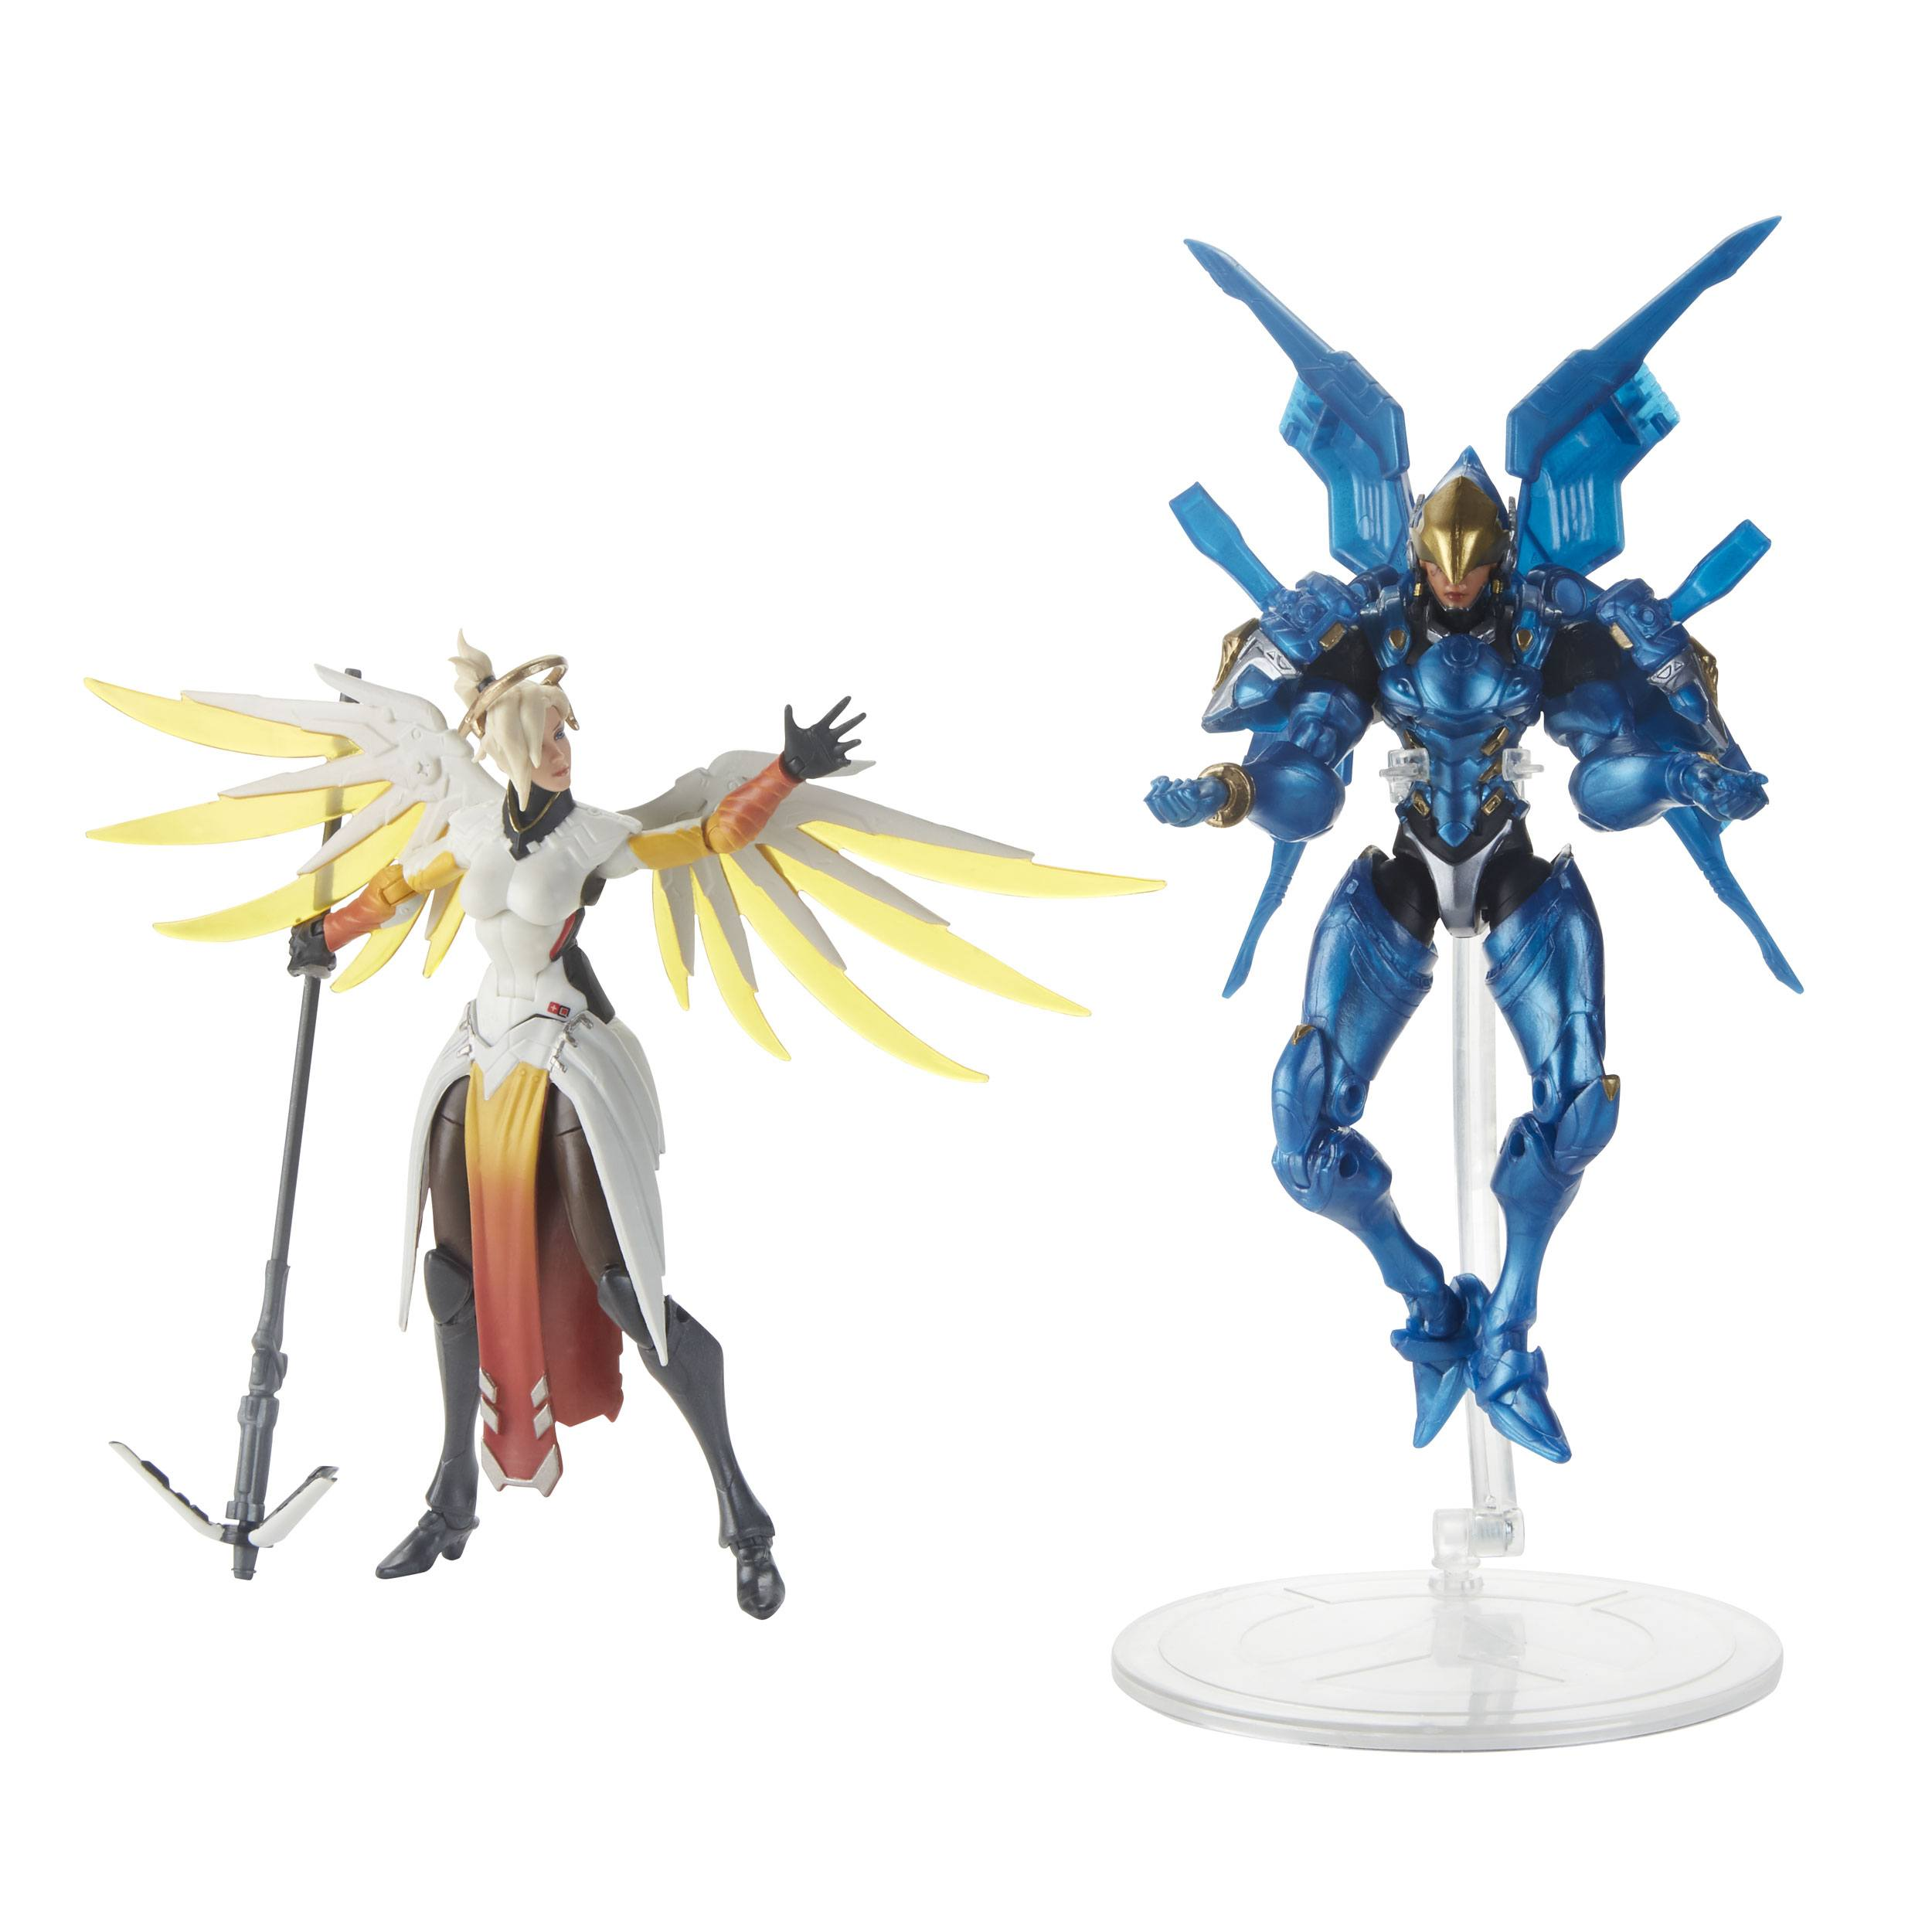 Overwatch Ultimates Action Figures 15 cm 2-Packs 2019 Wave 1 Assortment (4)  - Animegami Store